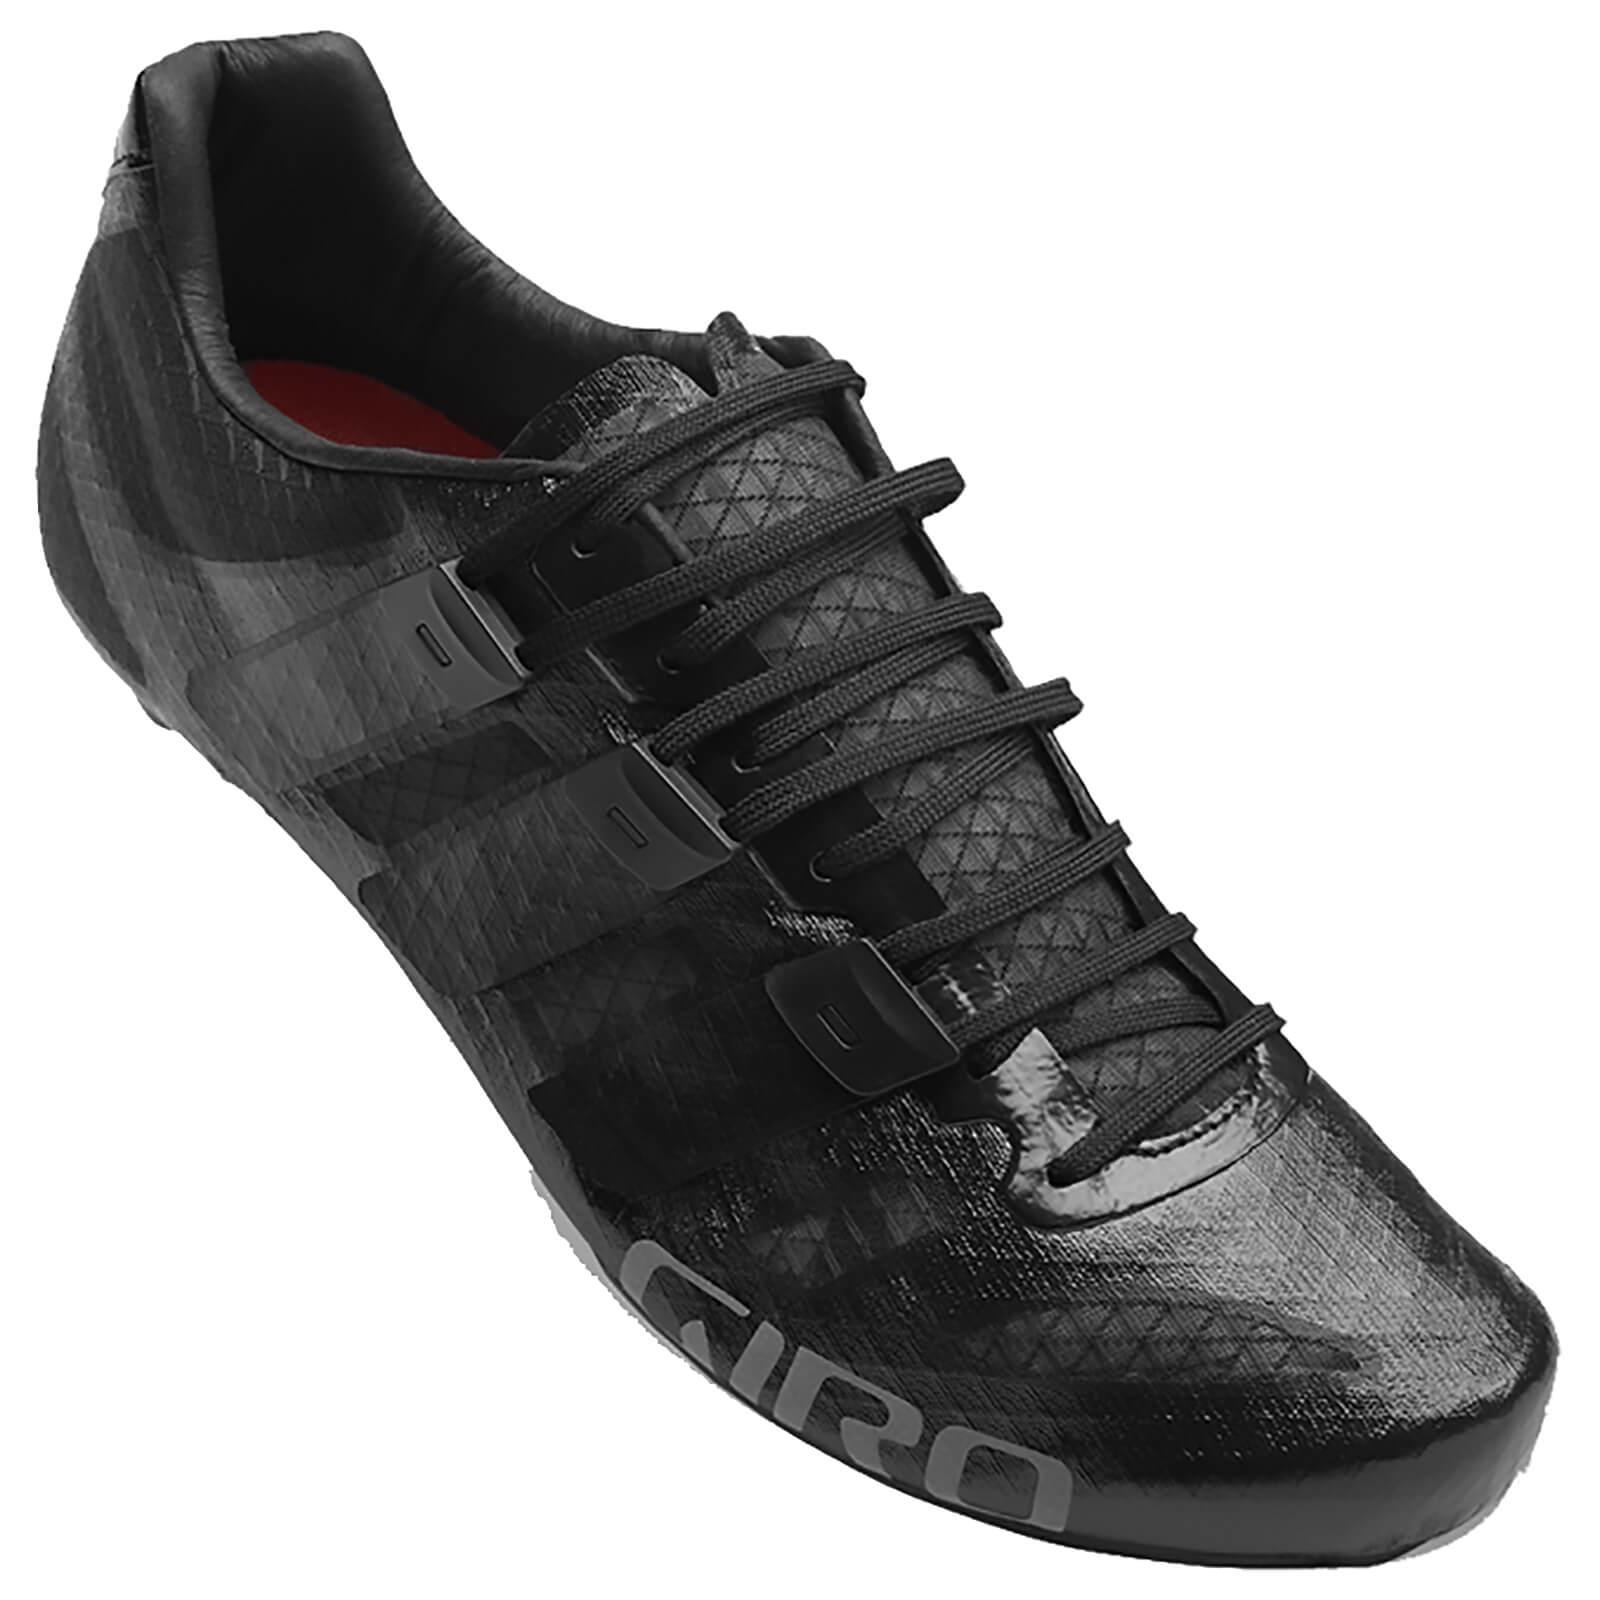 Giro Prolight Techlace Road Cycling Shoes - Black